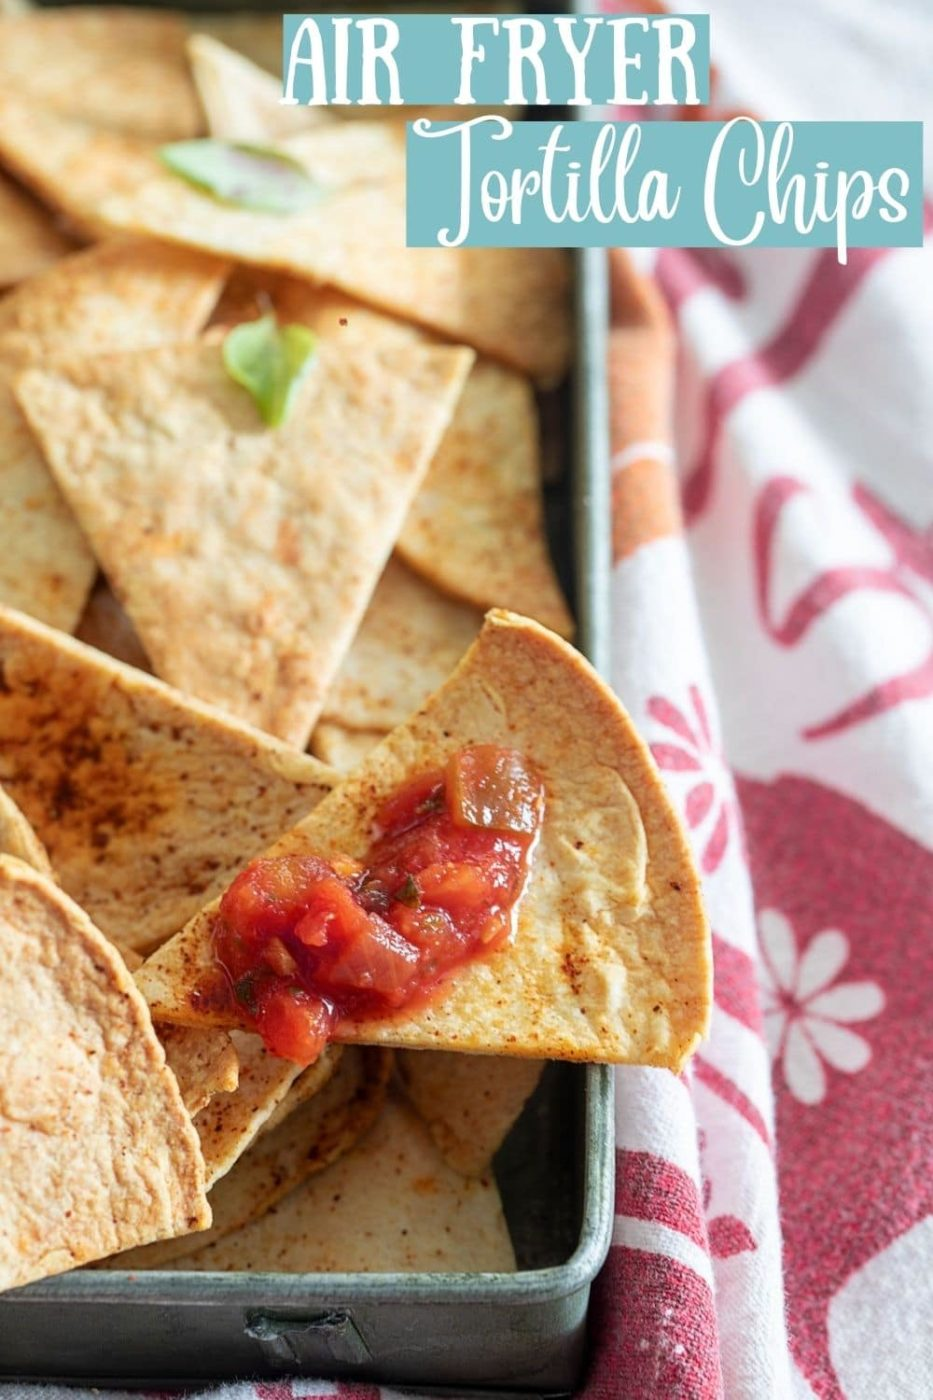 top, closeup view of a tortilla chip with salsa on it on top other tortilla chips in a grey pan